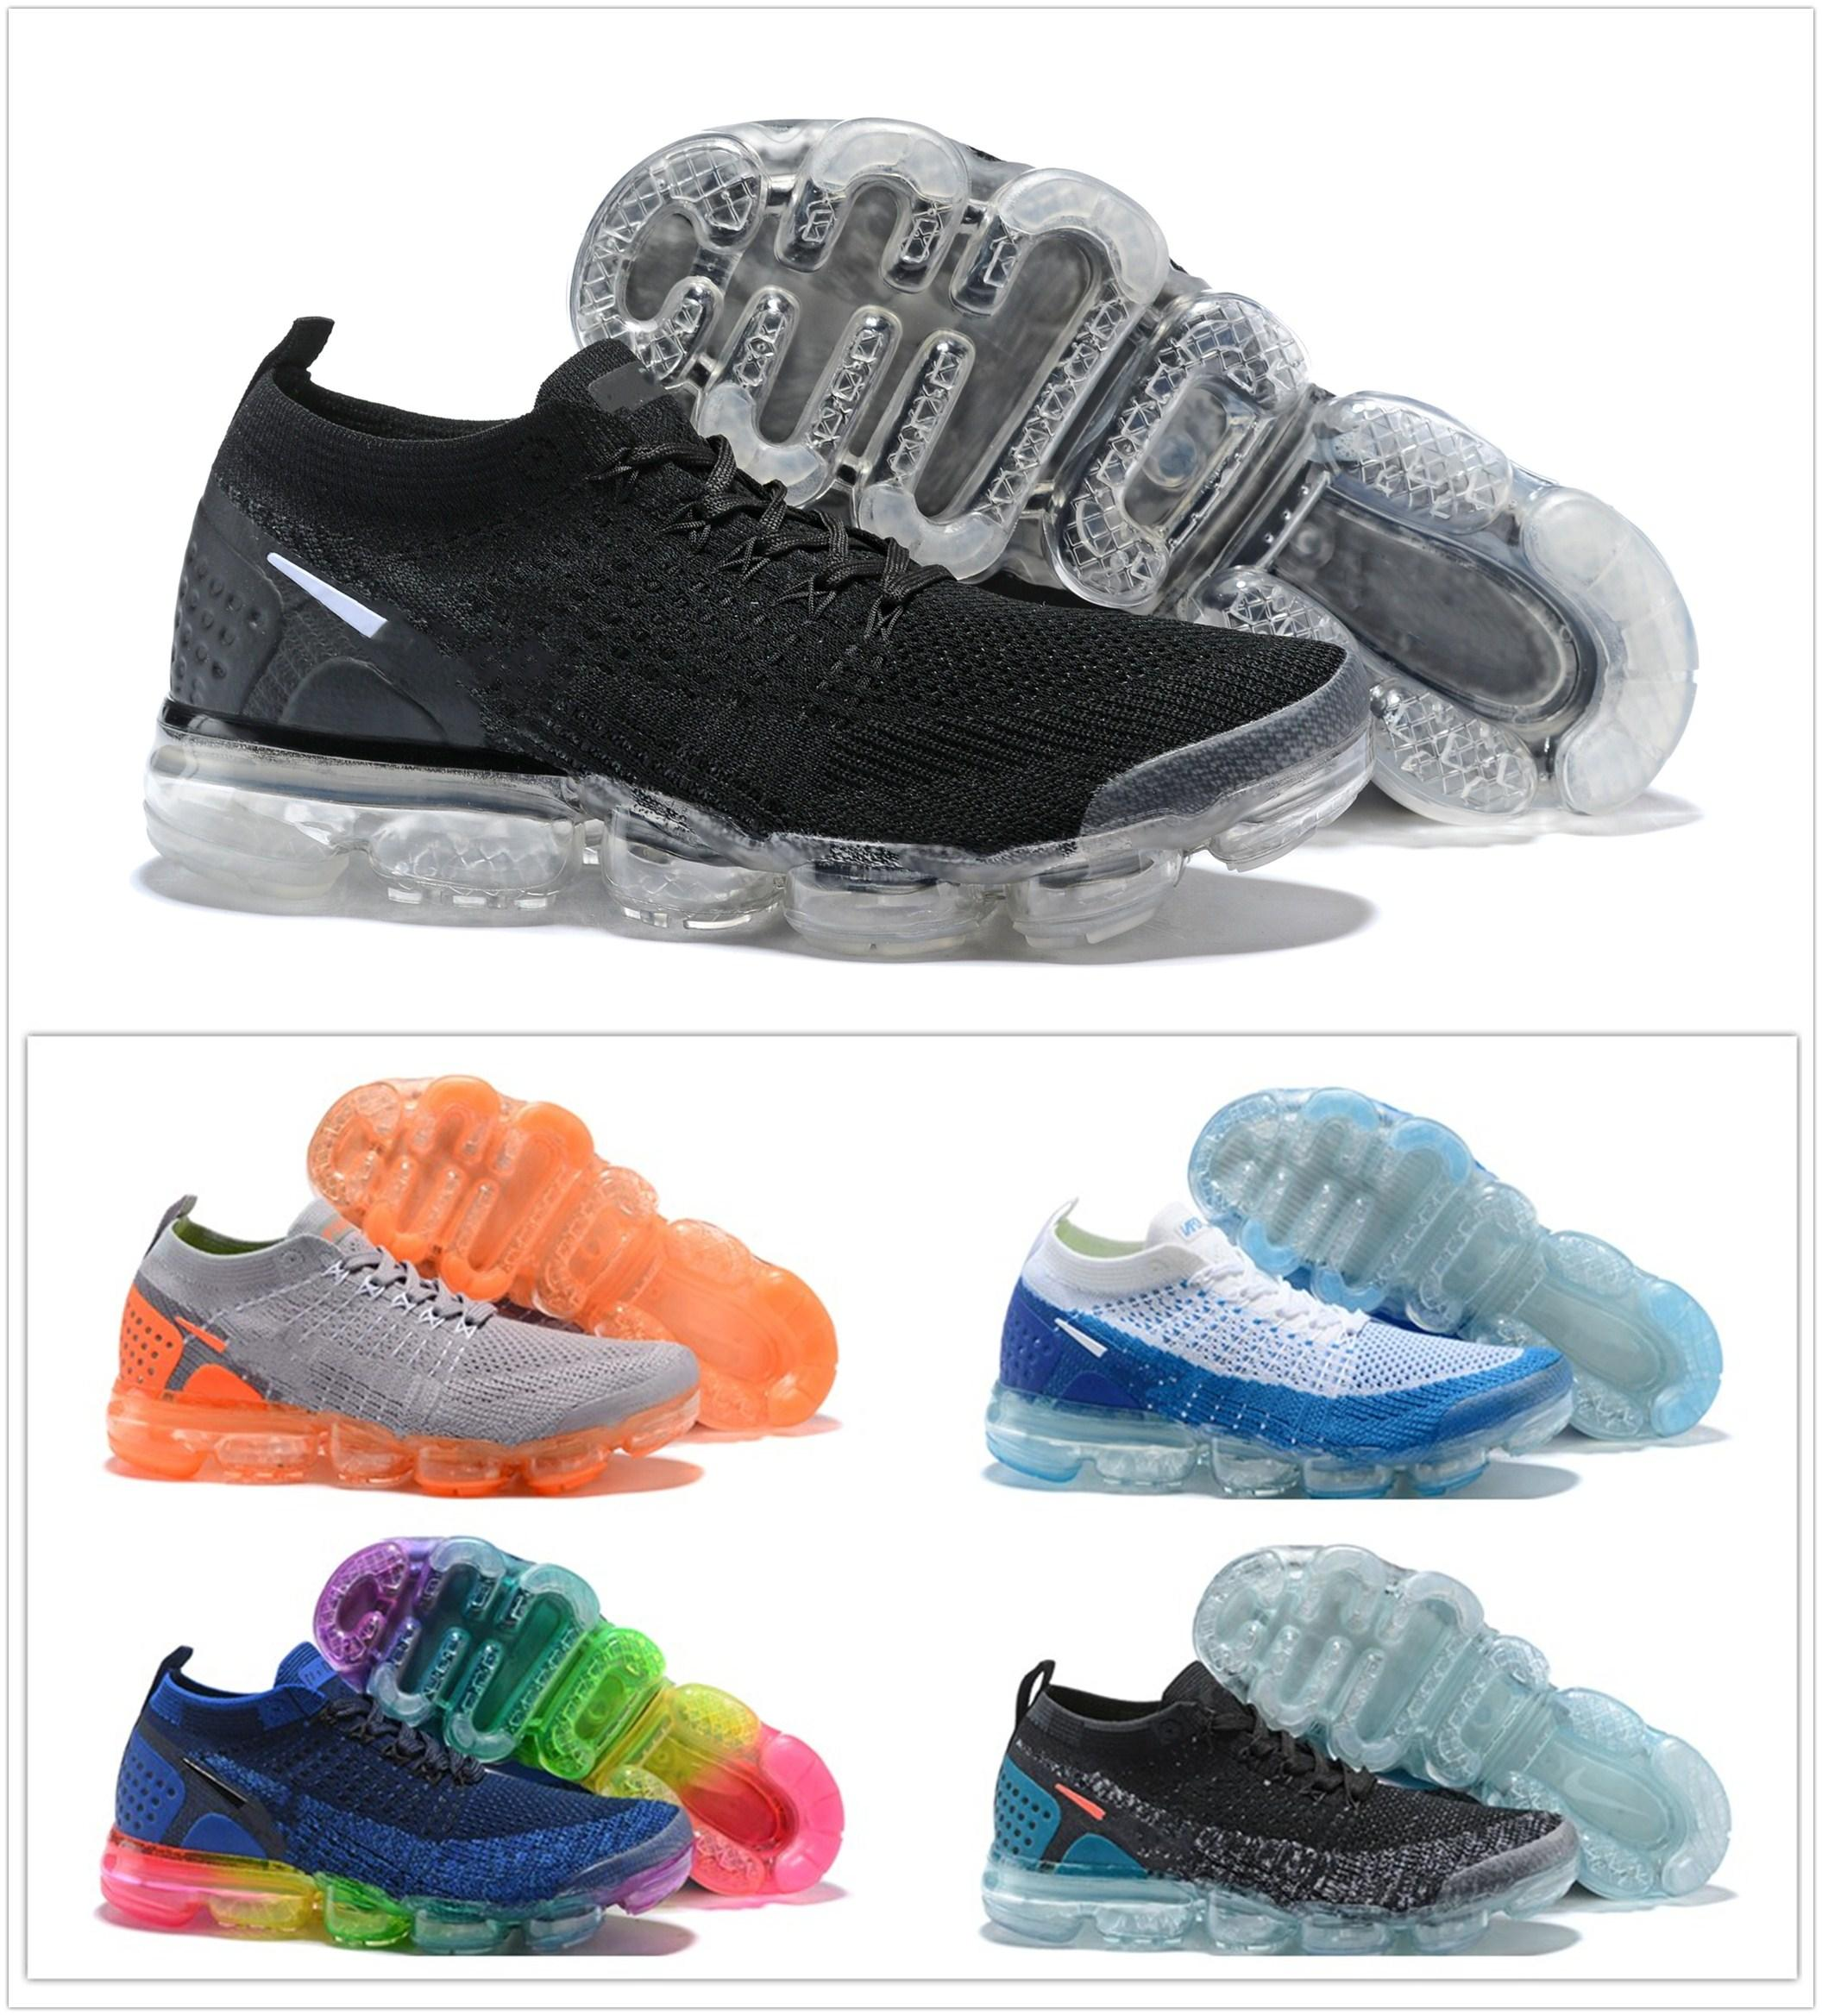 4d7f7f0d69901 Rmaxes Running Shoes Men Women Classic Outdoor Run Shoe Vapor Black White  Sport Shock Jogging Walking Hiking Sports Athletic Sneakers Running Shoes  Maxes ...